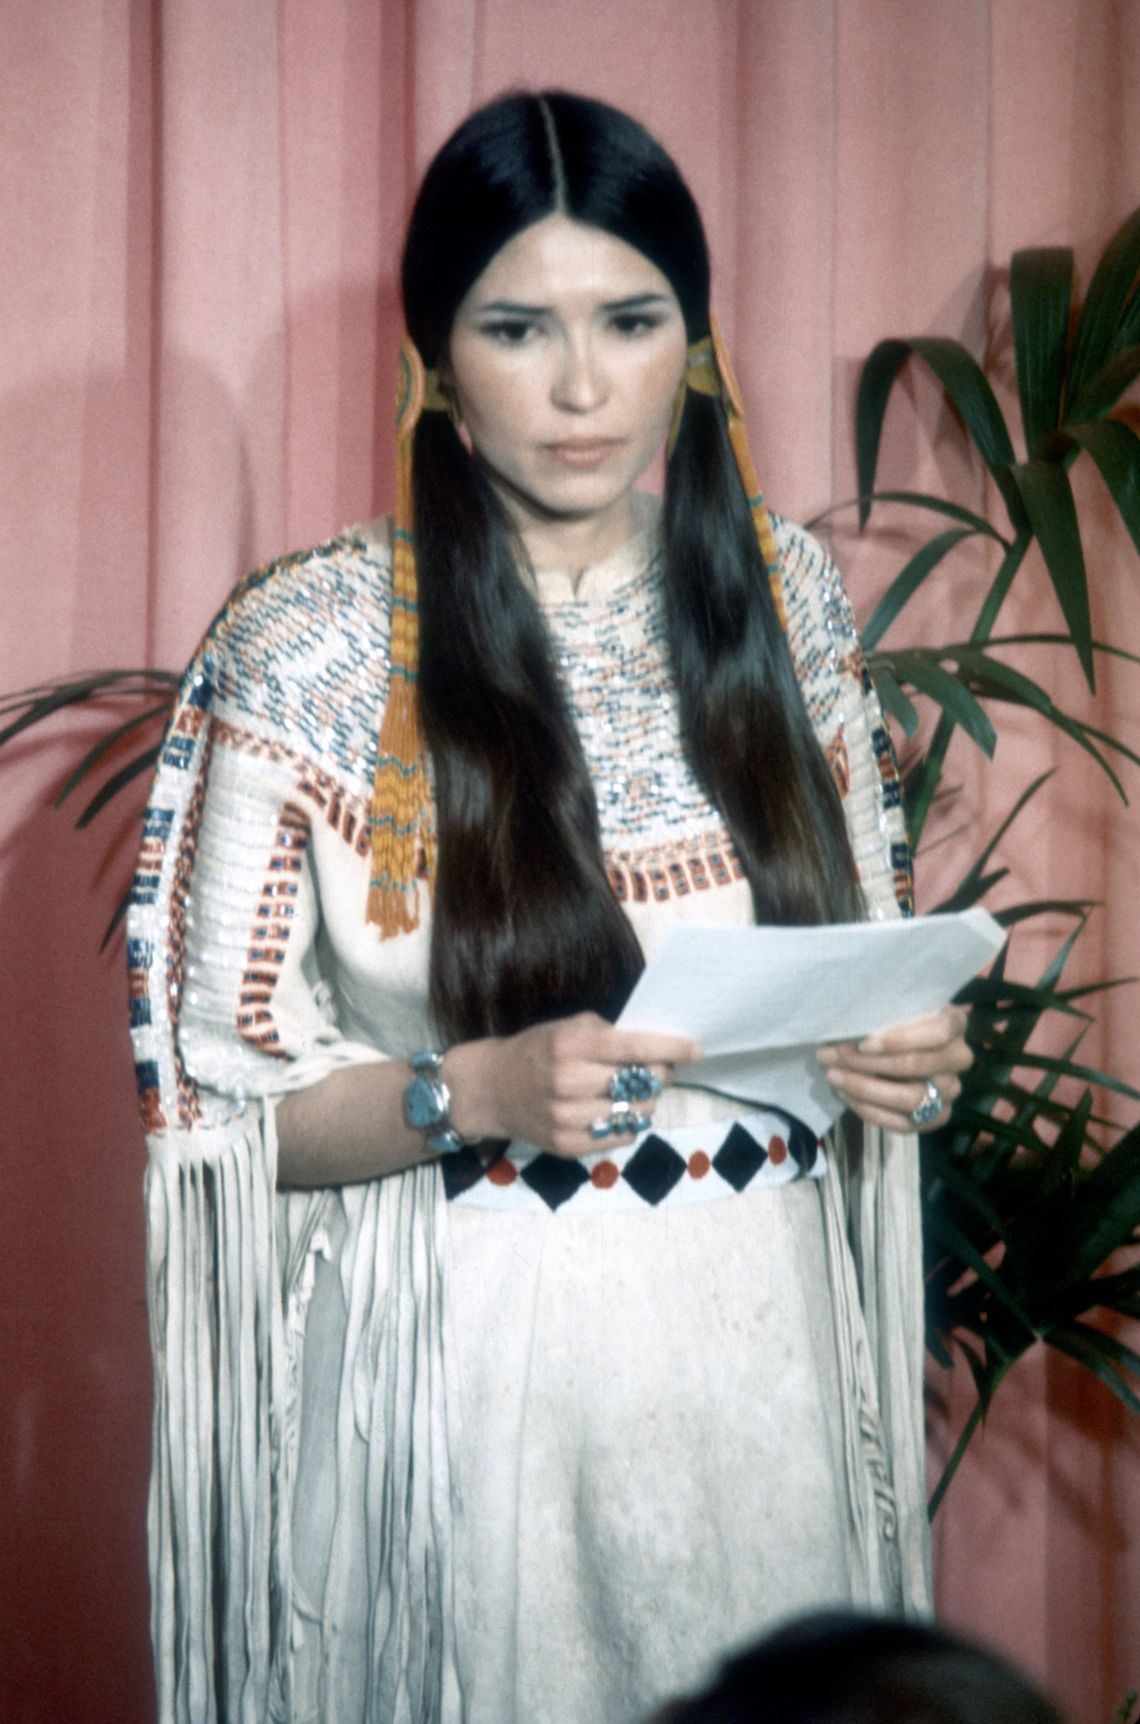 Marlon Brando's win for The Godfather was, without doubt, a Big Deal, so when he refused to show up to collect his award, it raised a lot of eyebrows.Instead, Brando sentSacheen Littlefeather, a Native-American actress who collected the award on his behalf, explaining that he wasn't present because he was protesting Hollywood's portrayal of Native Americans on the big screen.